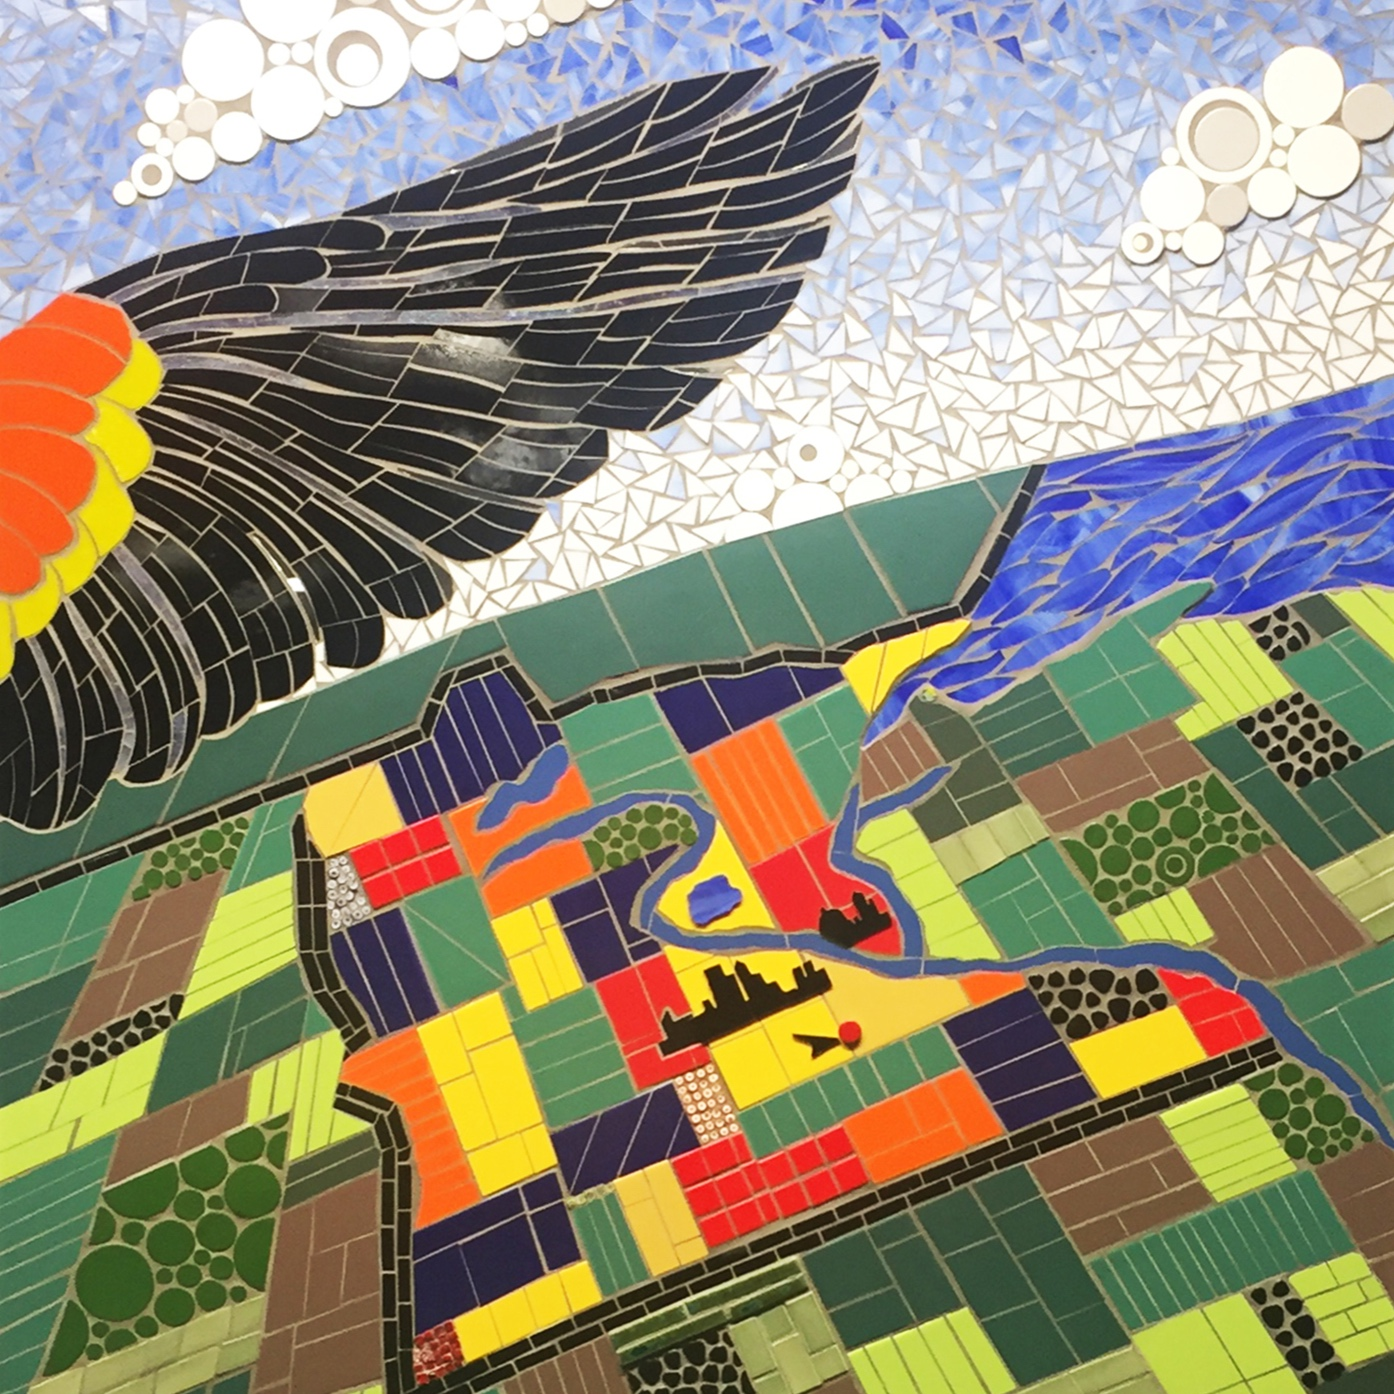 Wings Financial Credit Union - (semi-representational; art consultant project)